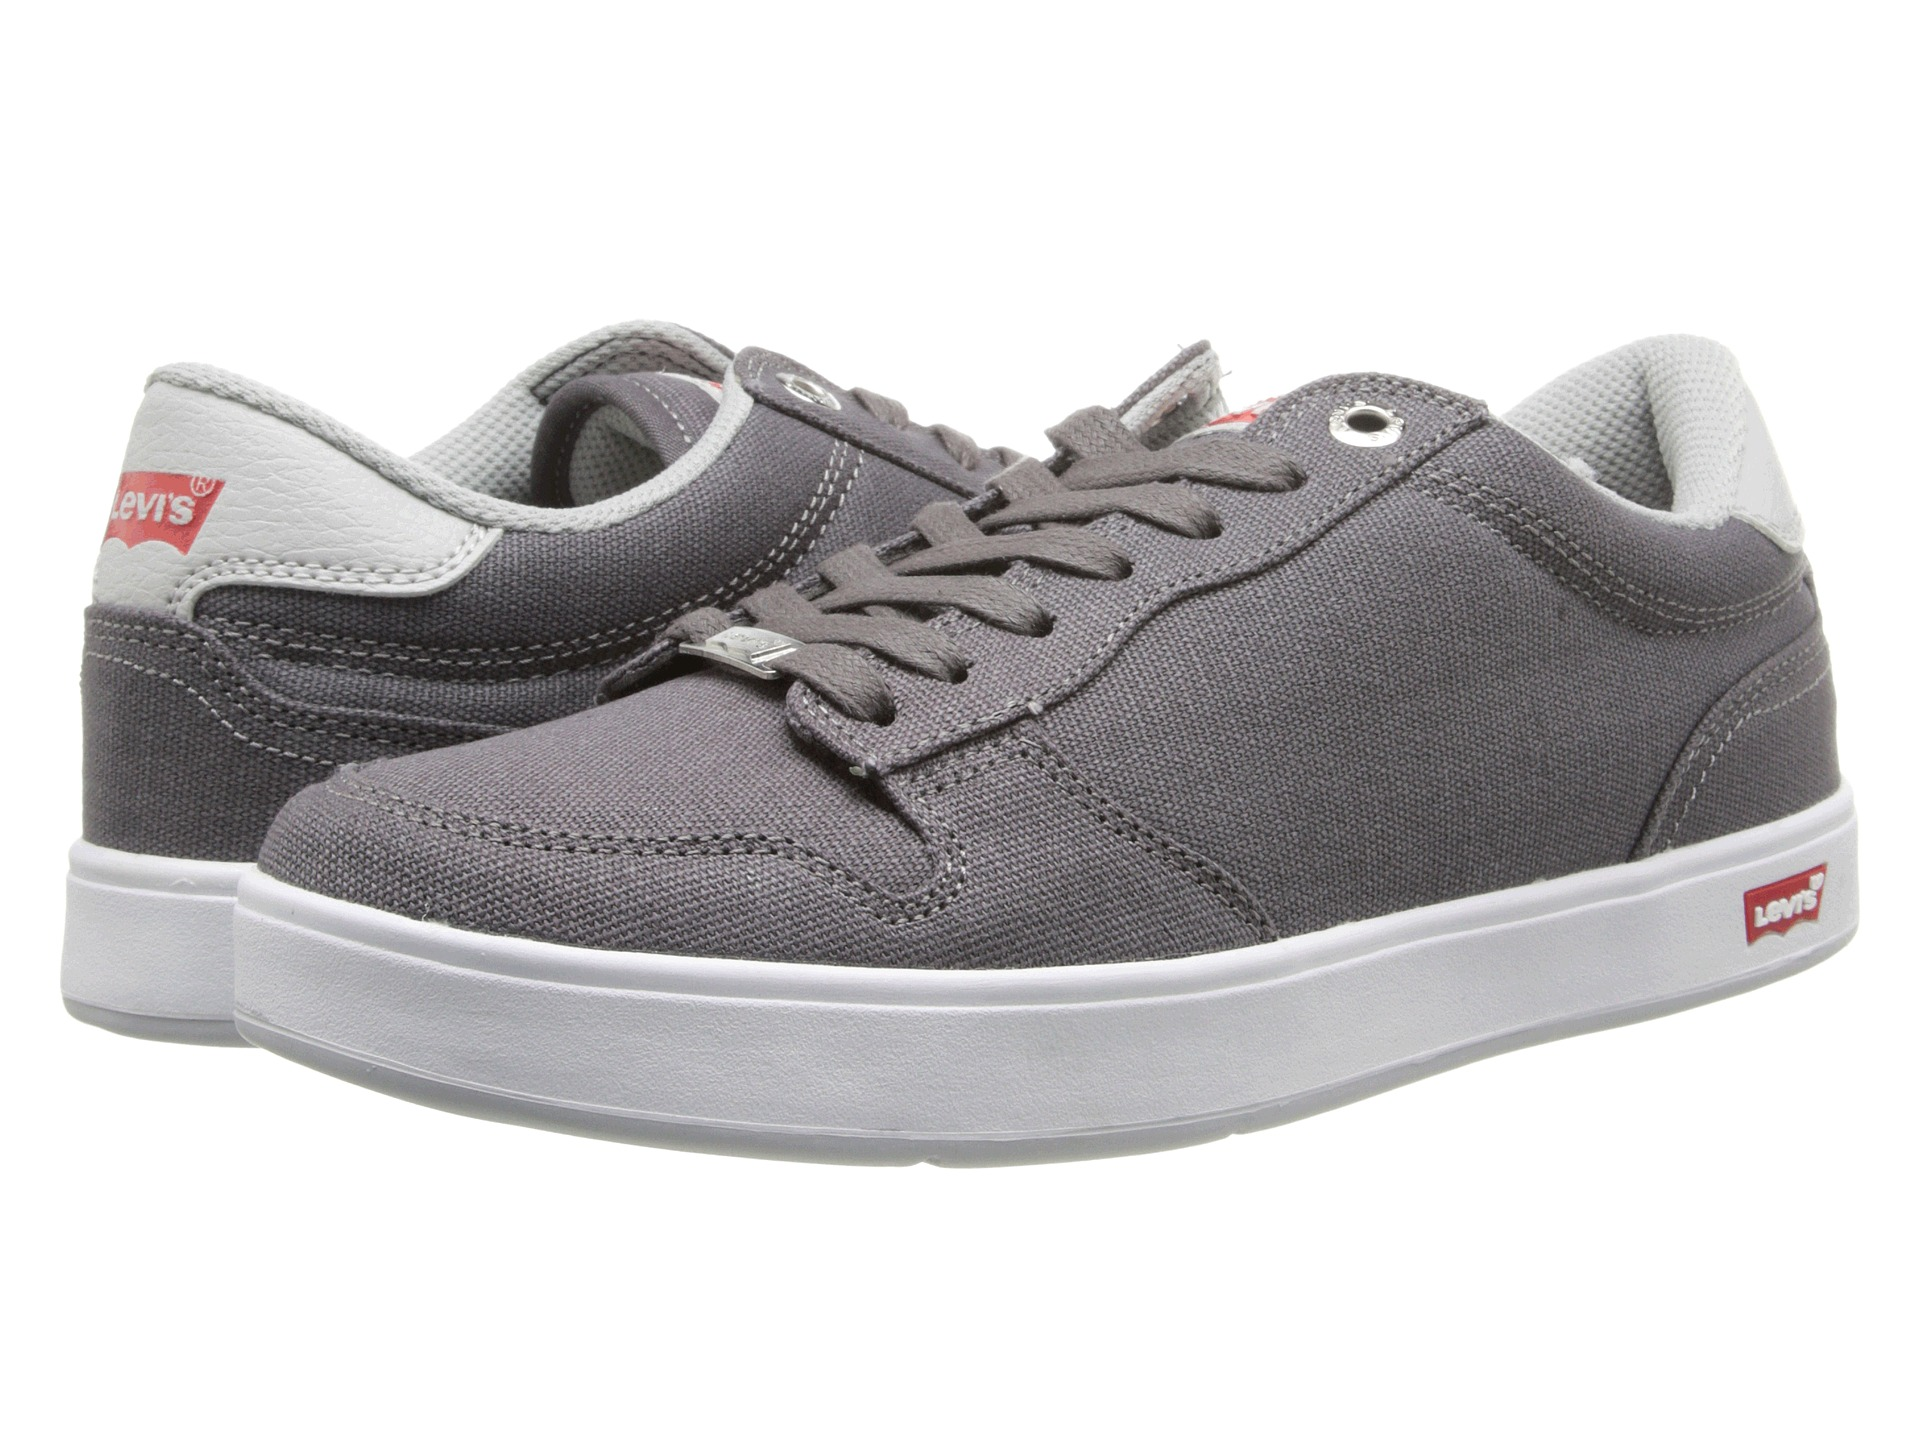 levi s 174 shoes wallace low canvas zappos free